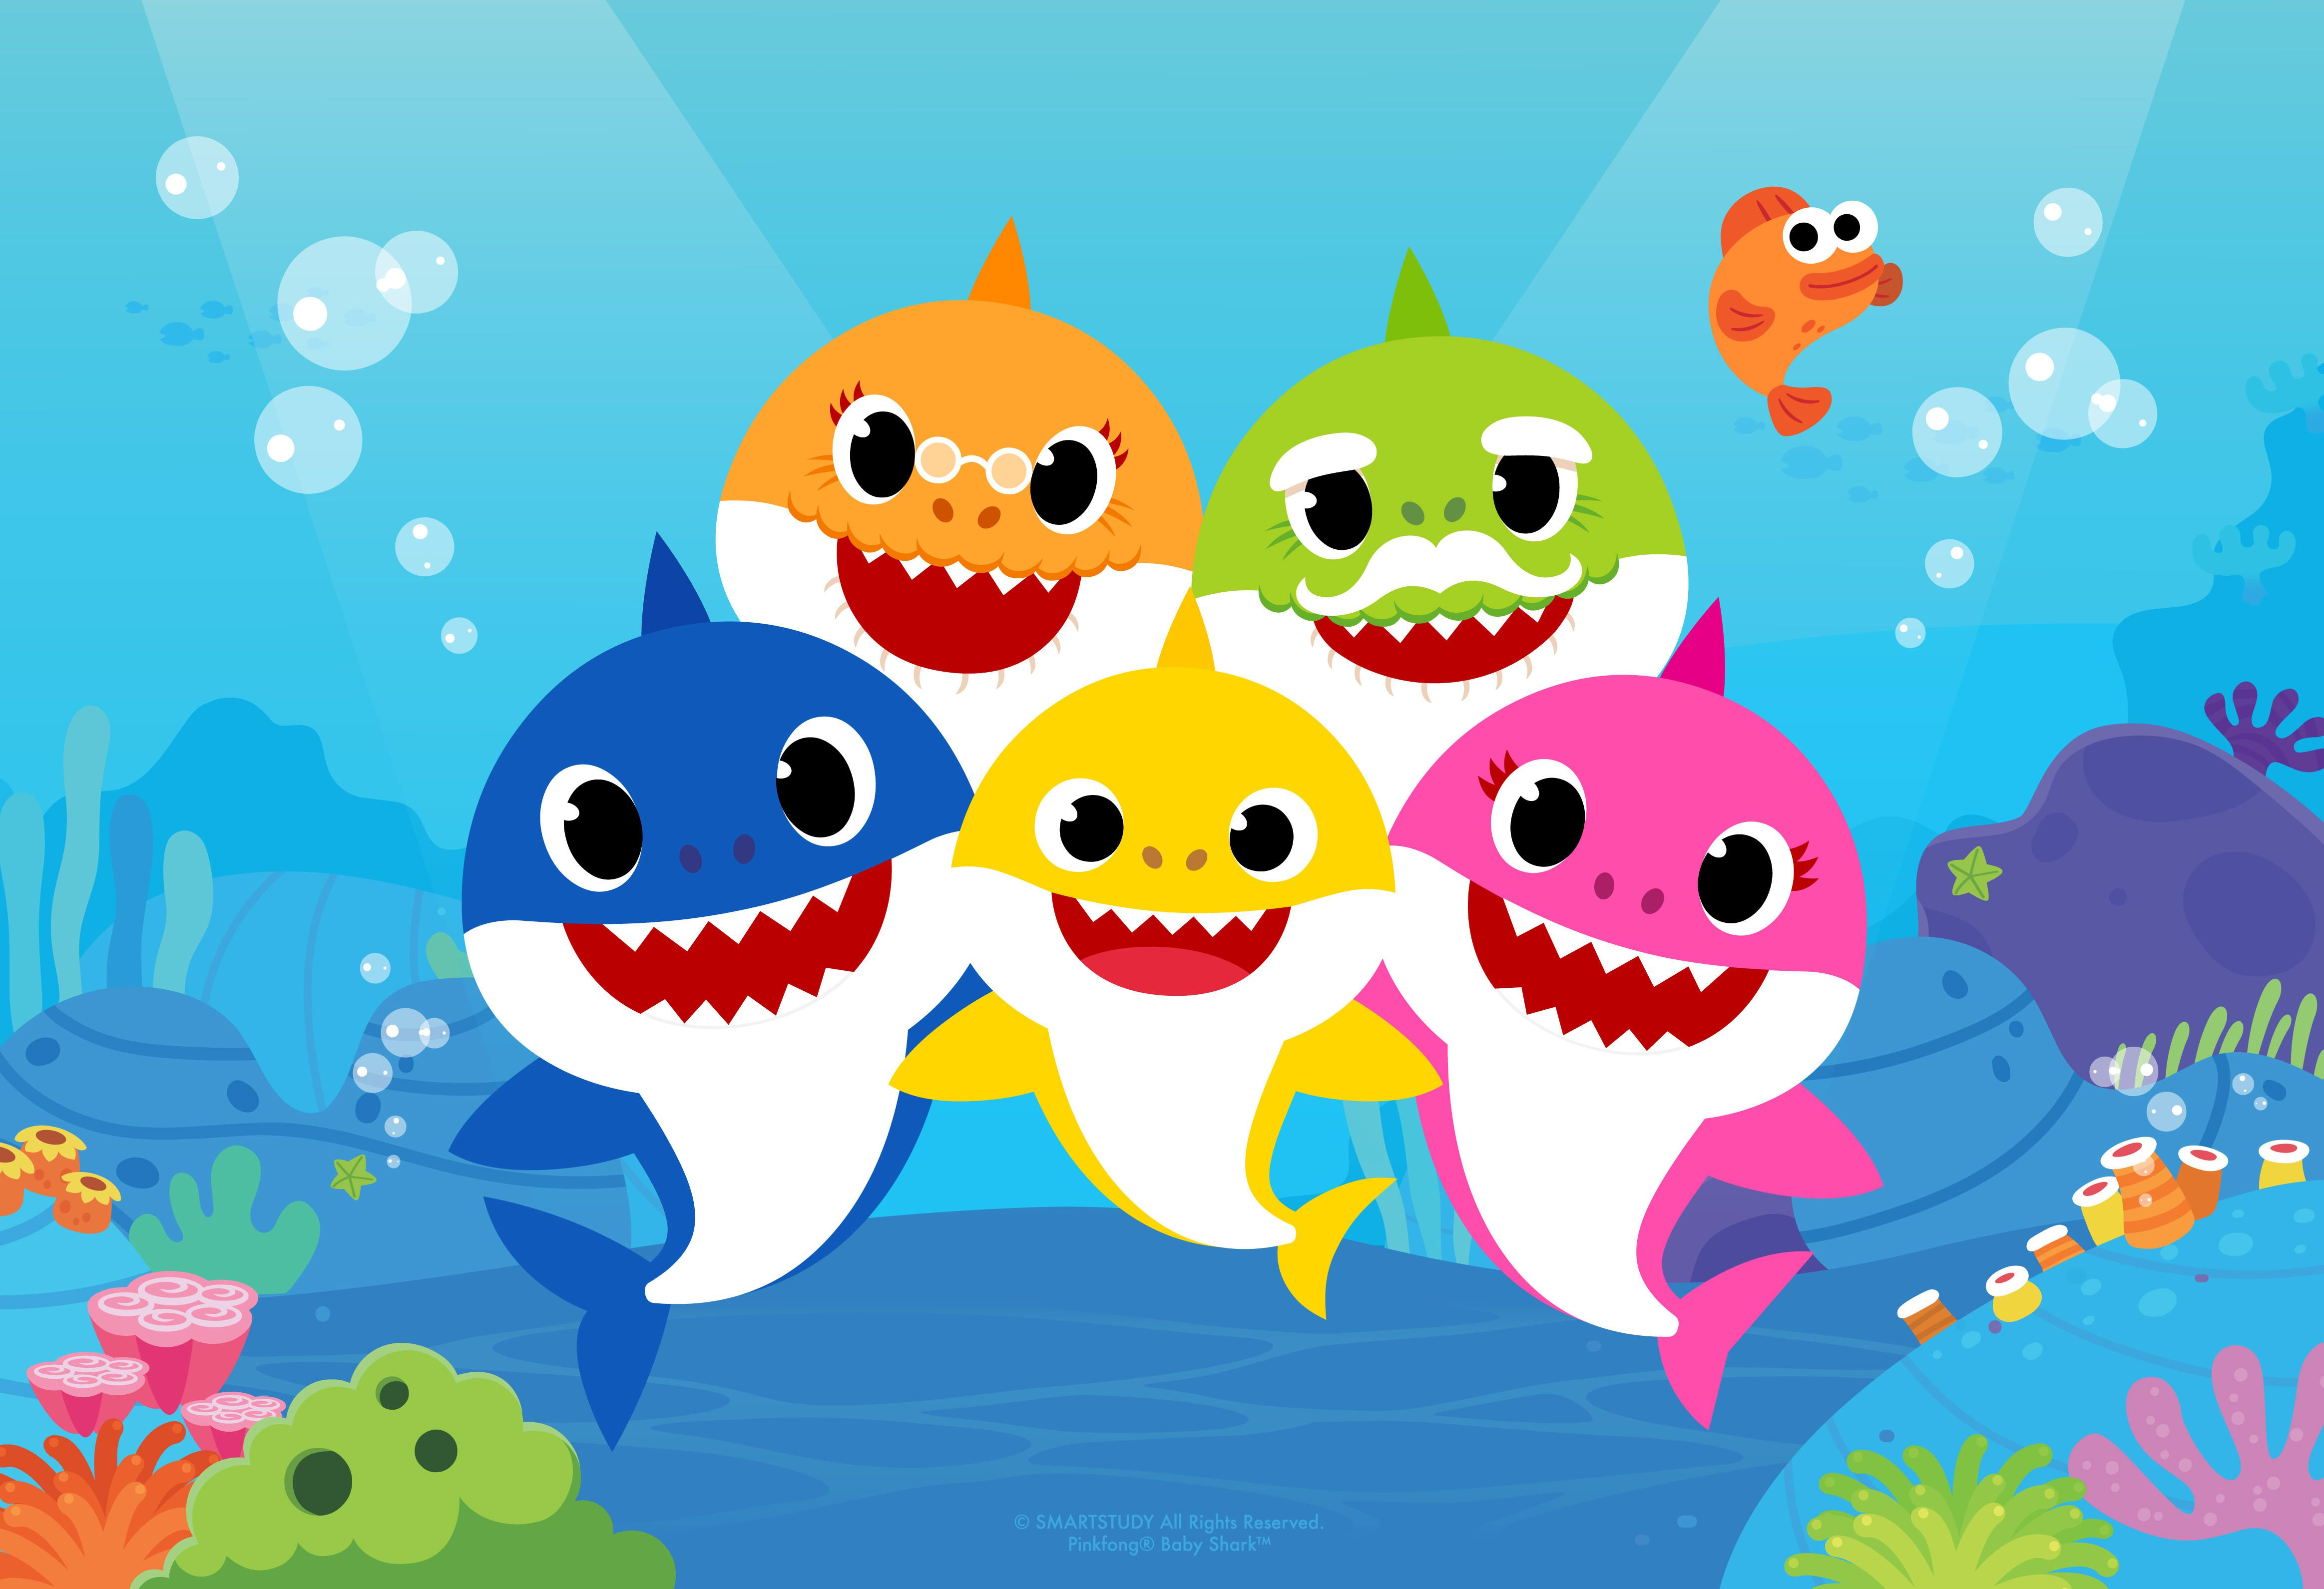 Baby shark pinkfong family clipart png black and white Baby Shark has a TV show now and we\'re all doomed - CNET png black and white